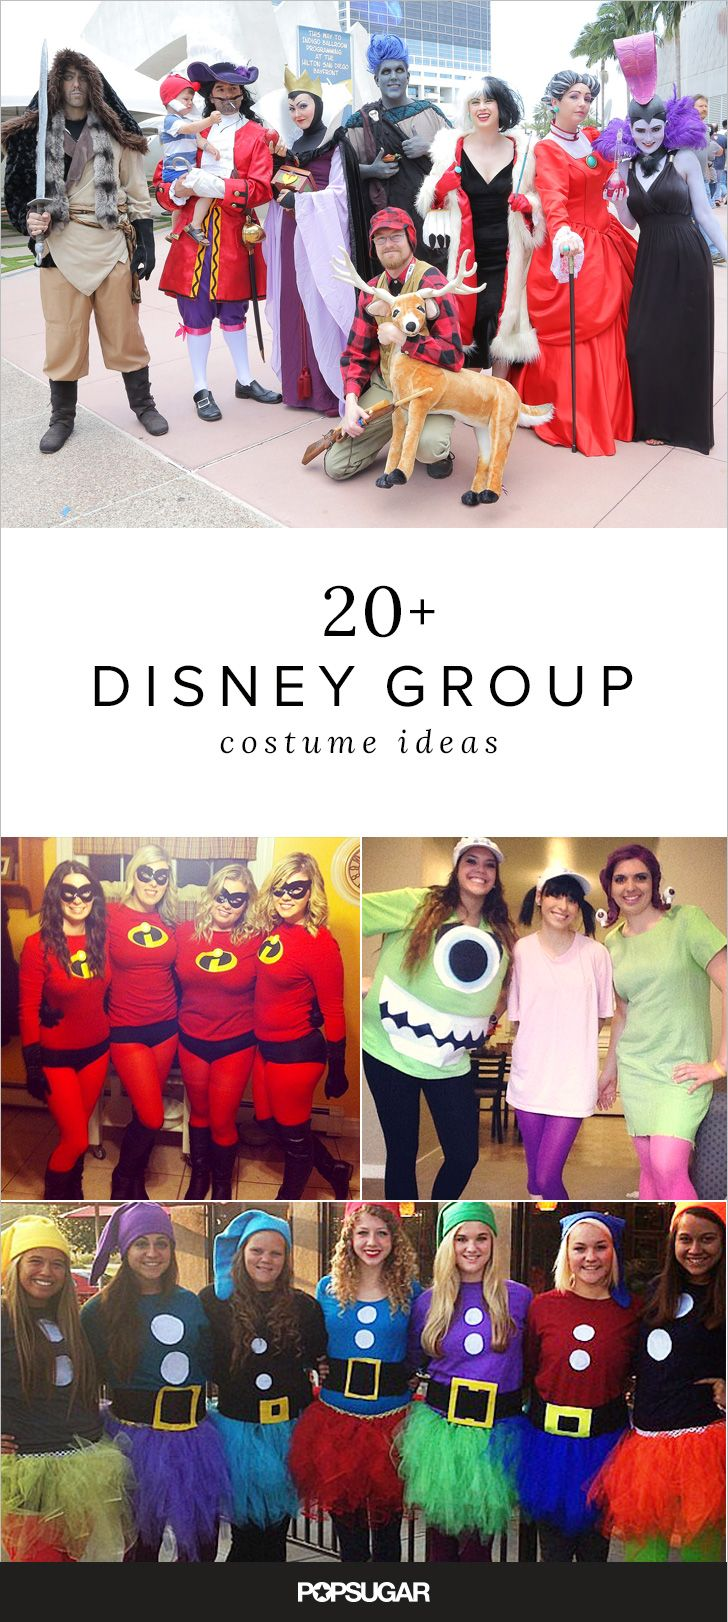 23 group disney costume ideas for your squad | disney fever